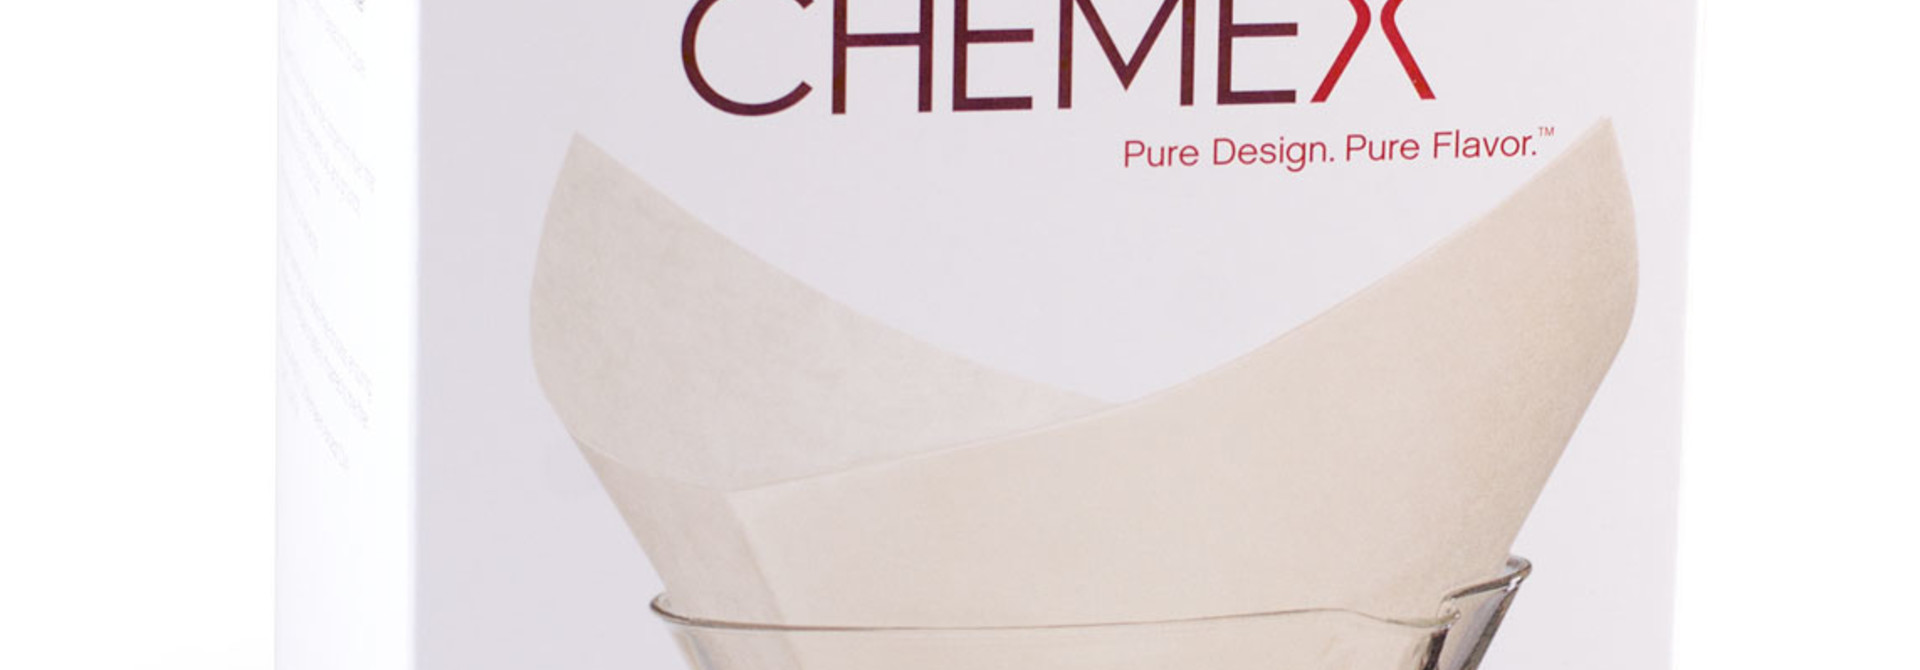 Chemex Filters Squares (6-8 cups)